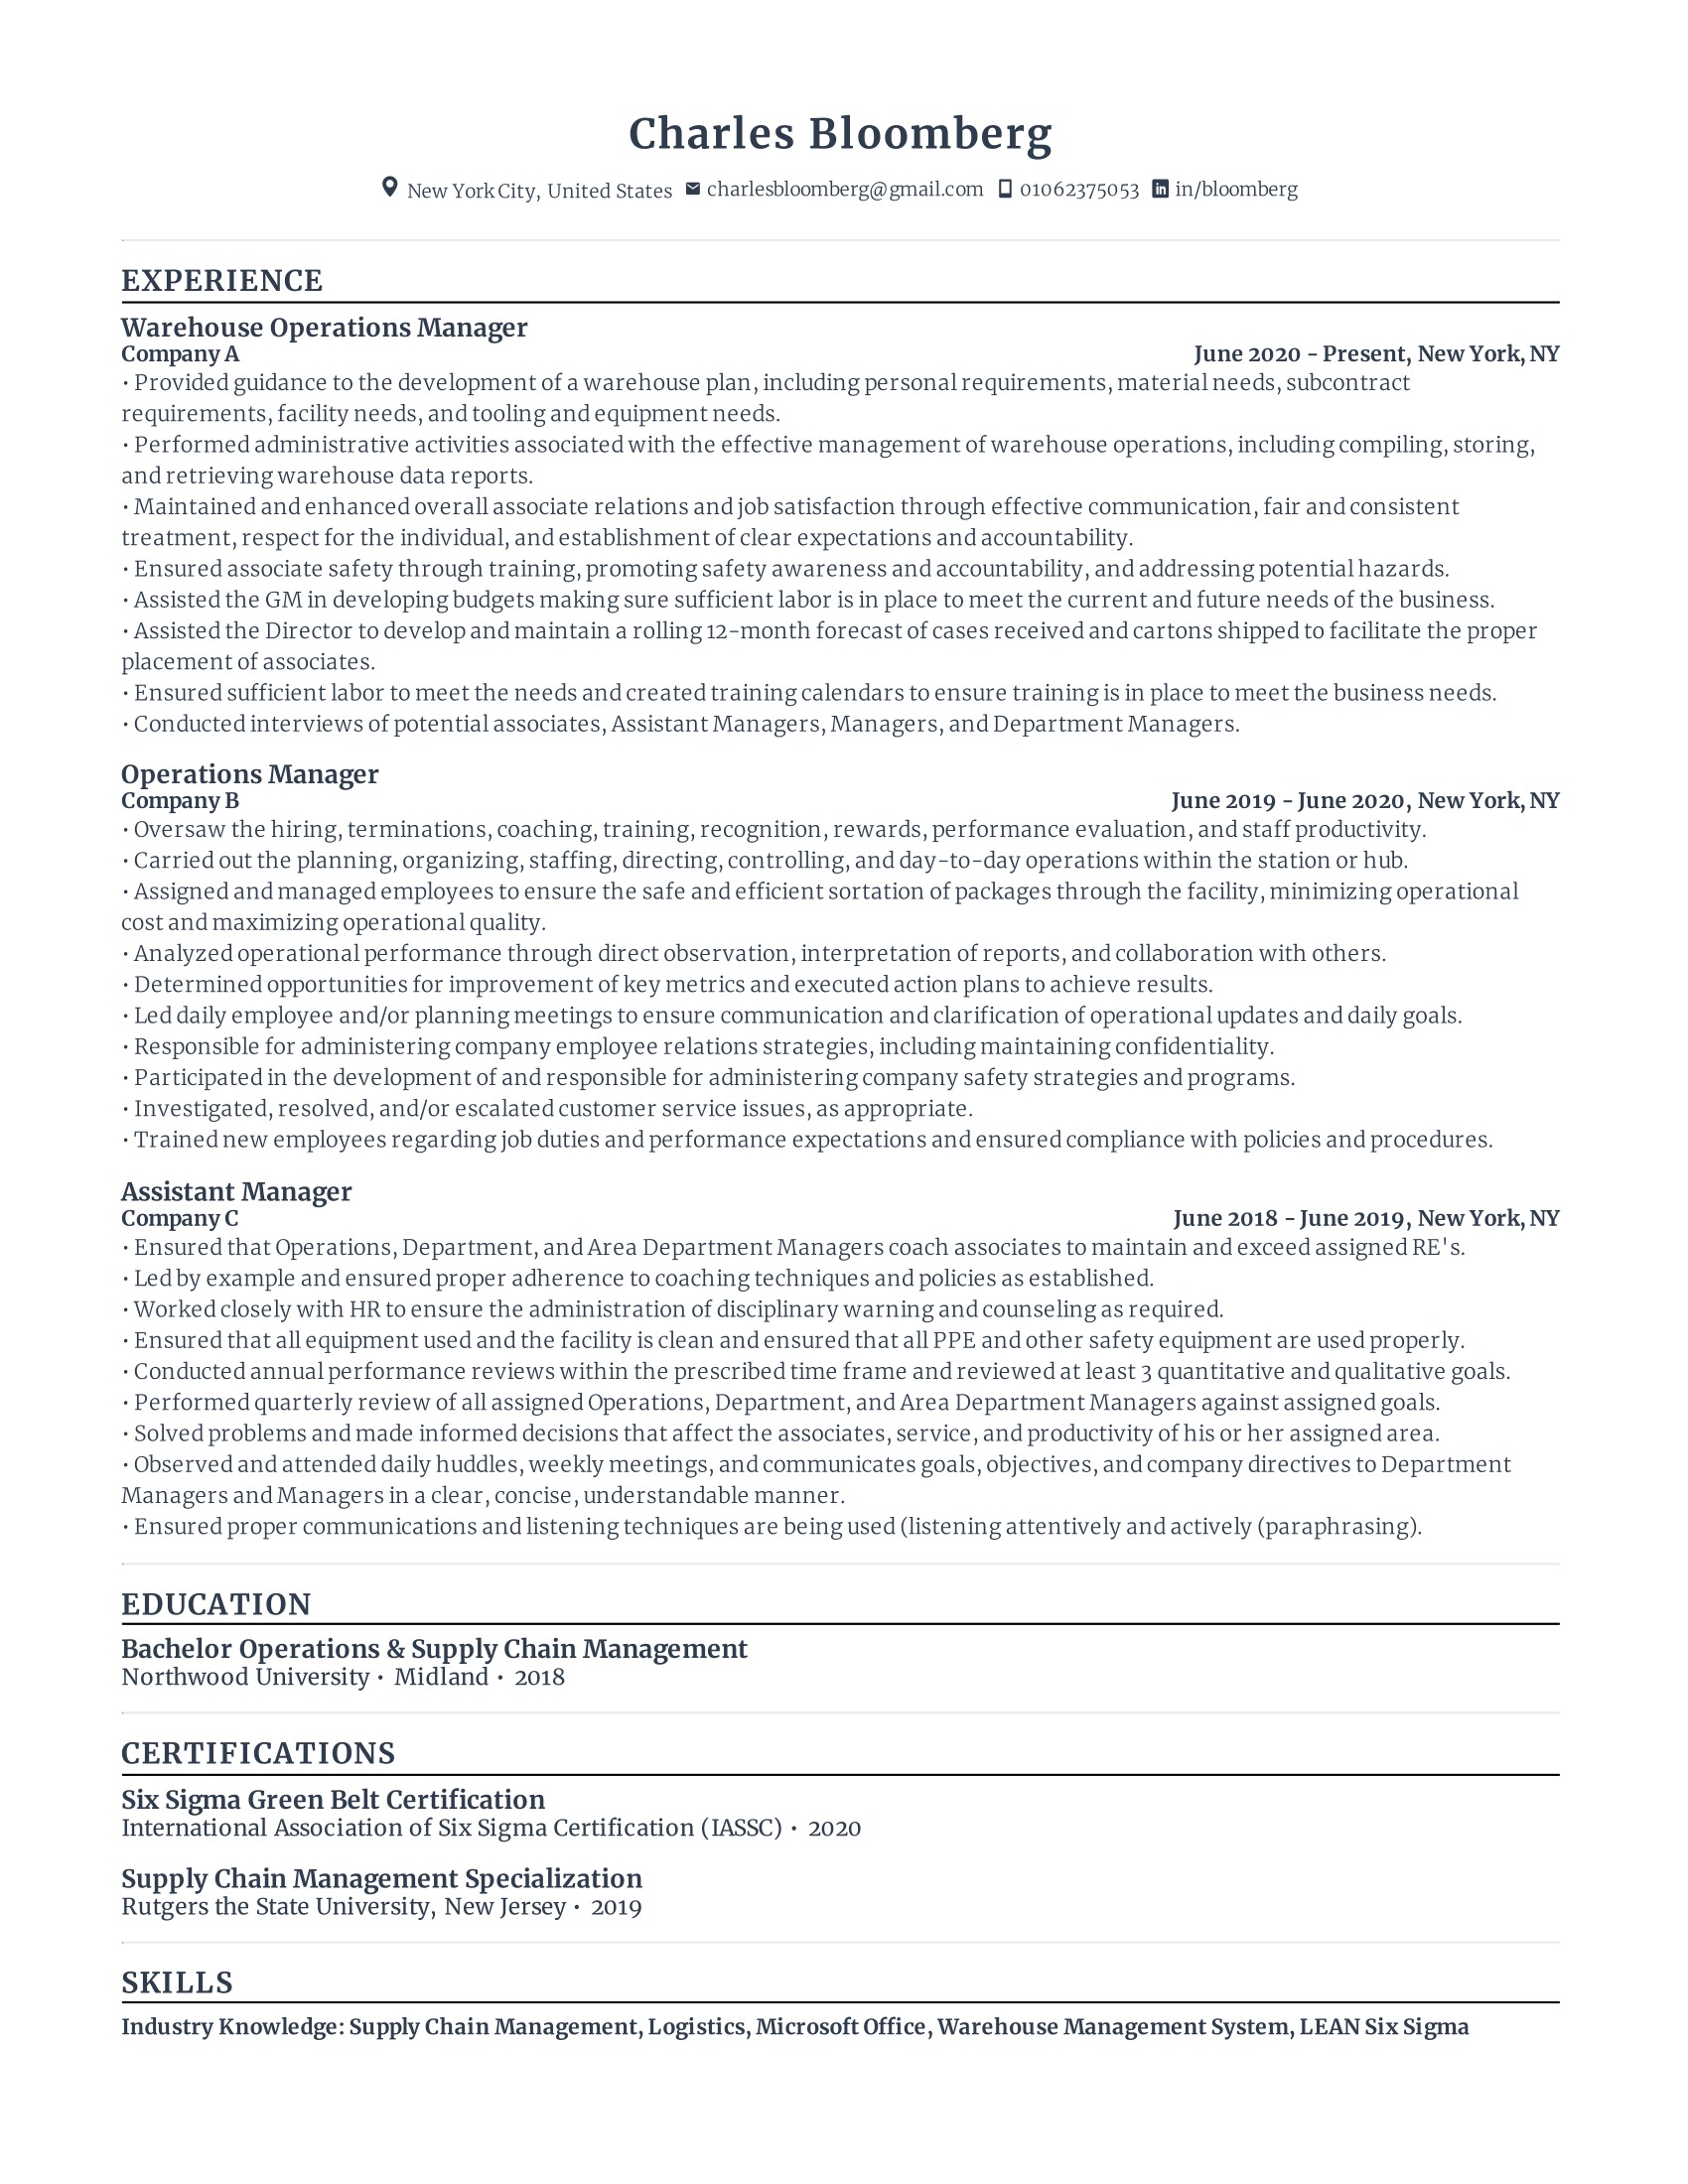 Warehouse operations manager